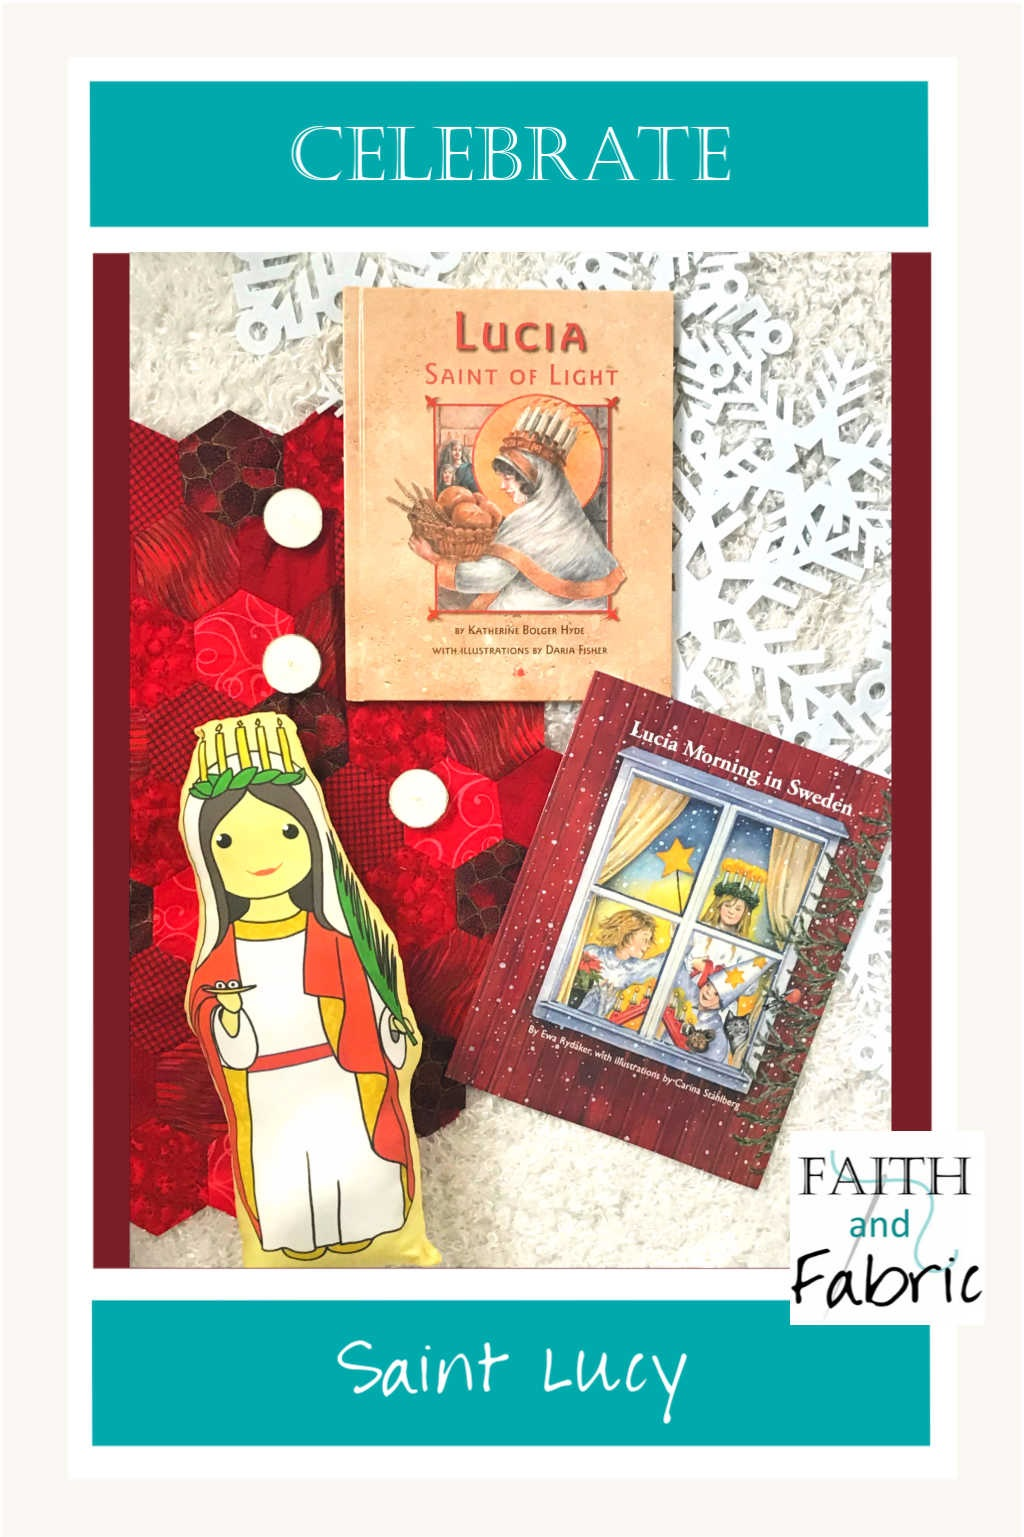 Celebrate Saint Lucy's feast day with these